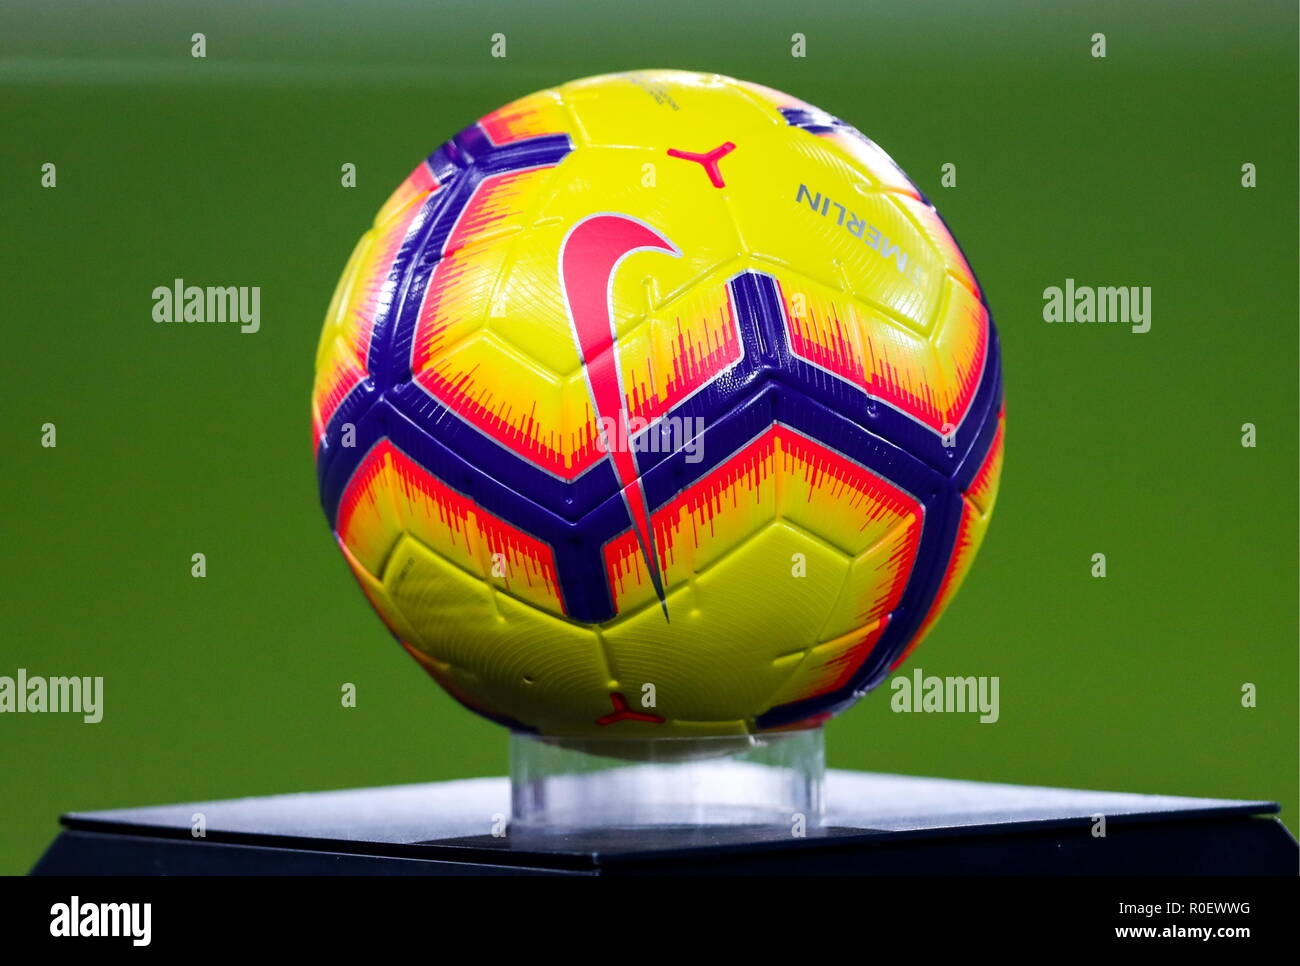 Moscow, Russia. 04th Nov, 2018. MOSCOW, RUSSIA - NOVEMBER 4, 2018: A ball on display before the start of a 2018/2019 Russian Football Premiere League Round 13 football match between Spartak Moscow and Ural Yekaterinburg at Otrkytiye Arena. Sergei Savostyanov/TASS Credit: ITAR-TASS News Agency/Alamy Live News - Stock Image